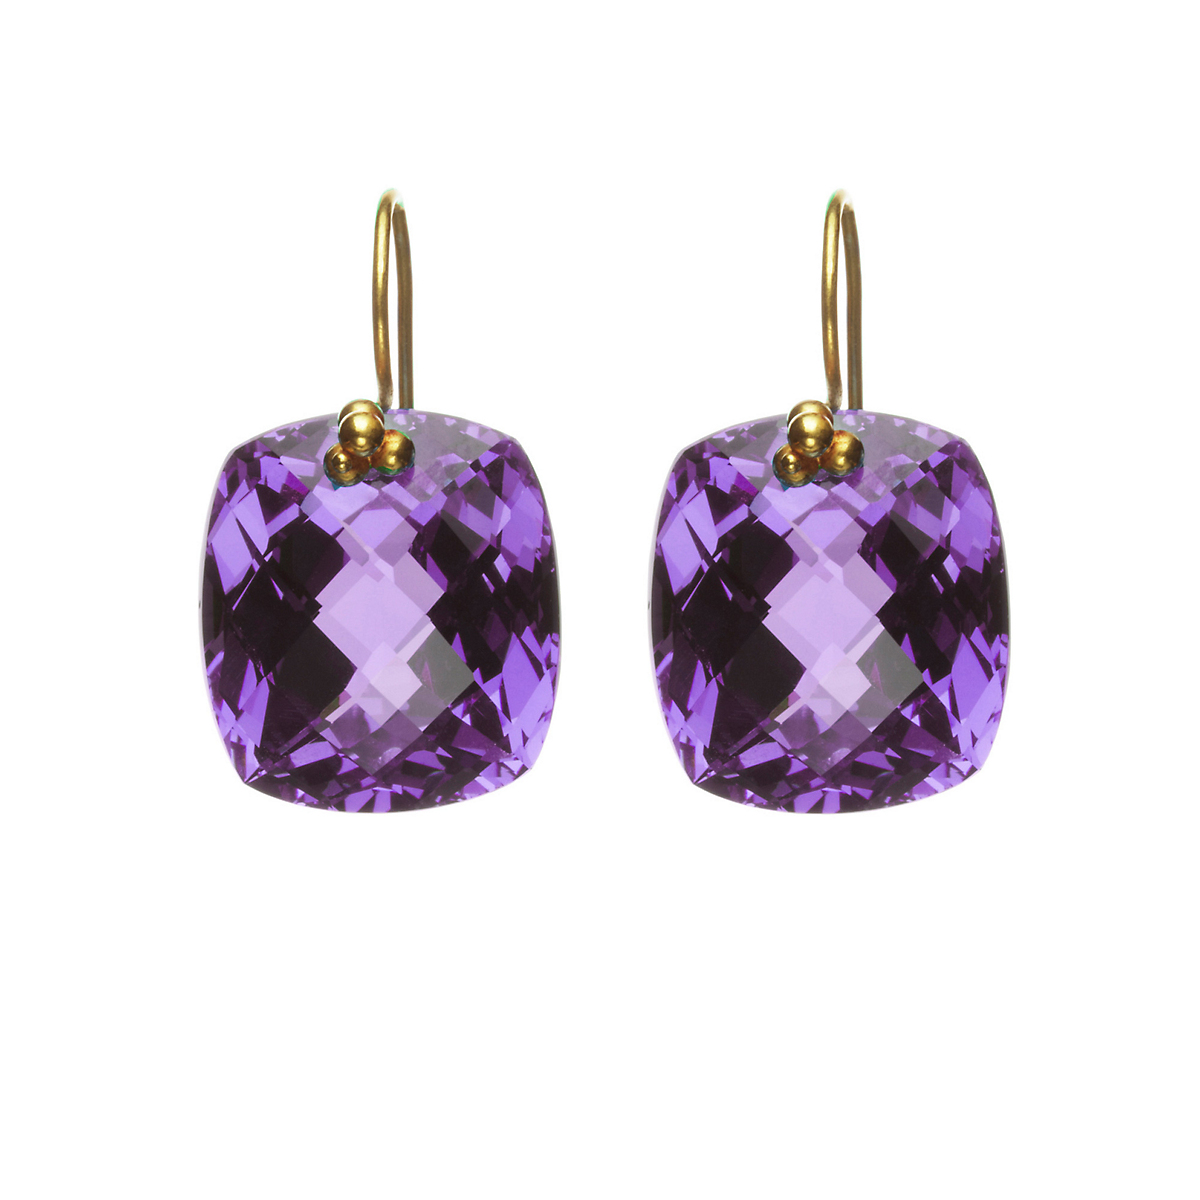 Nikki Baker Amethyst Cushion Earrings